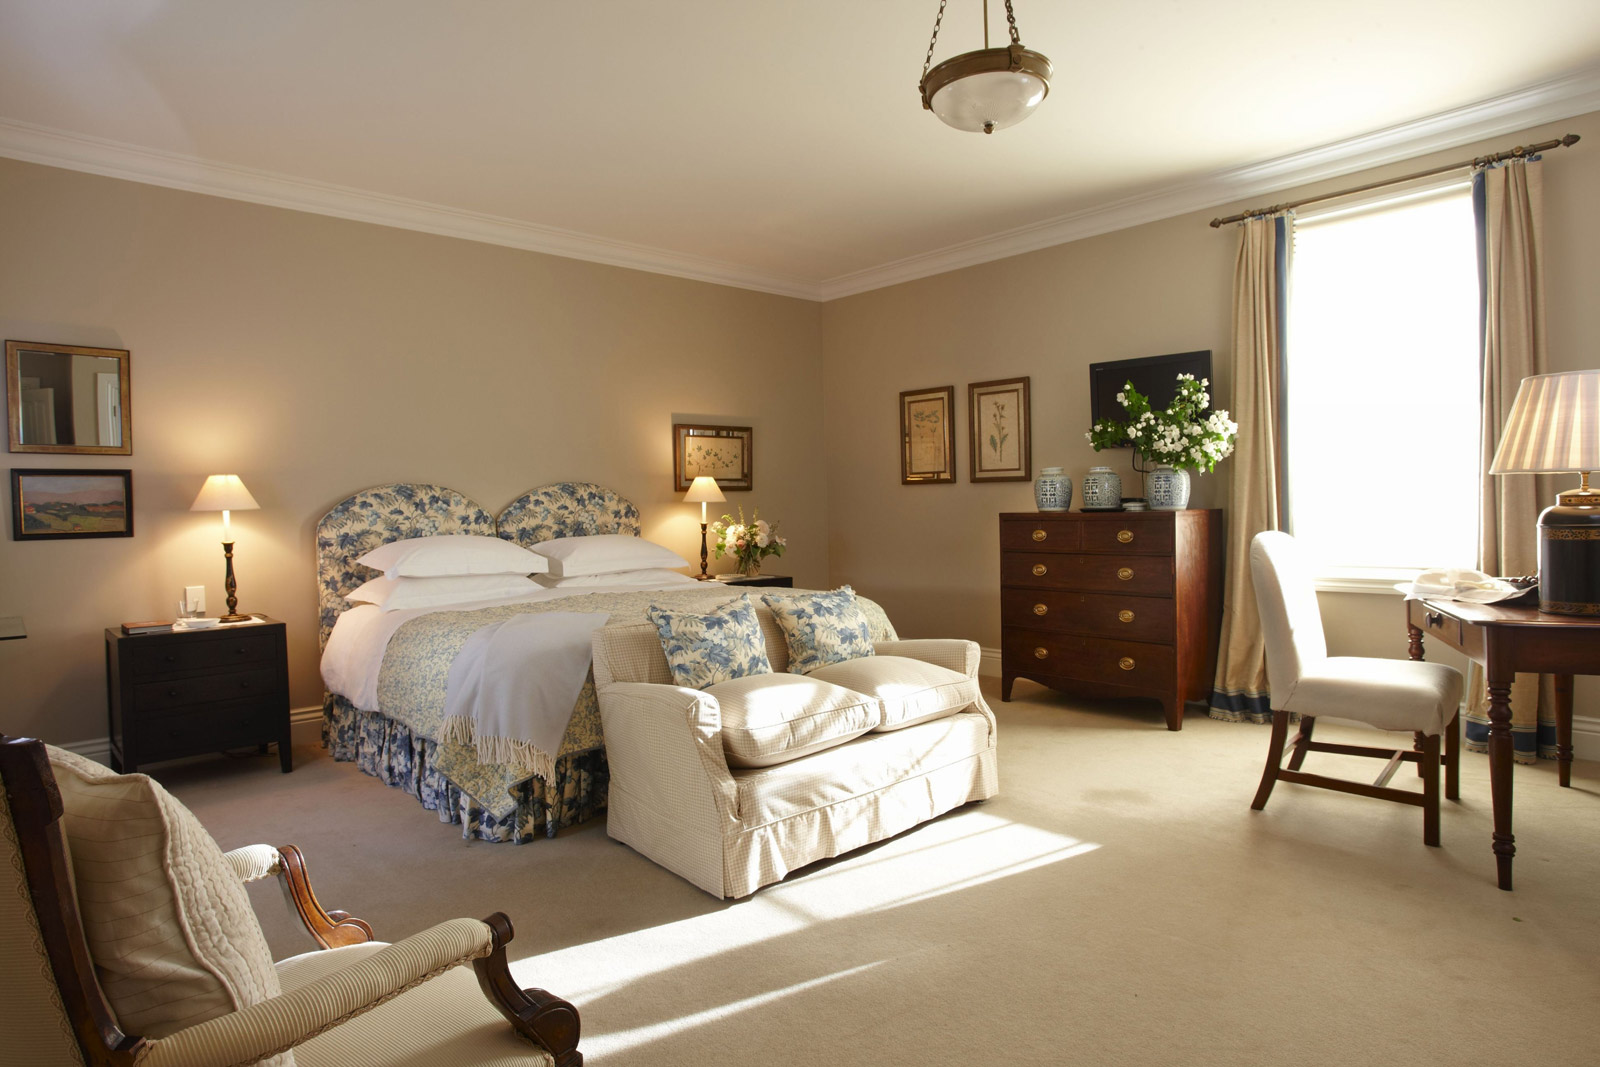 Luxury suite at Edenhouse - pic courtesy Edenhouse